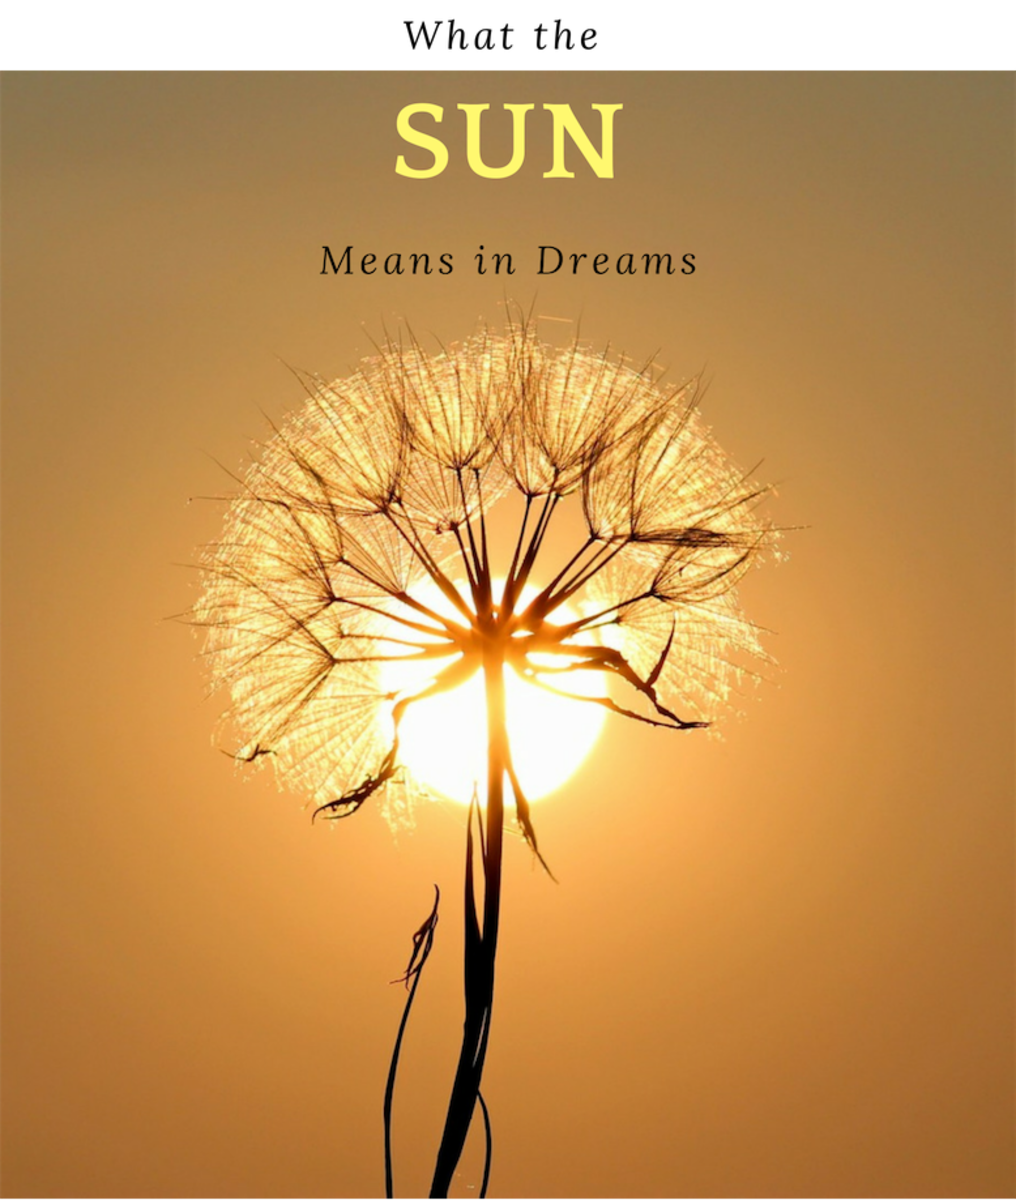 What Does the Sun Mean in Dreams?